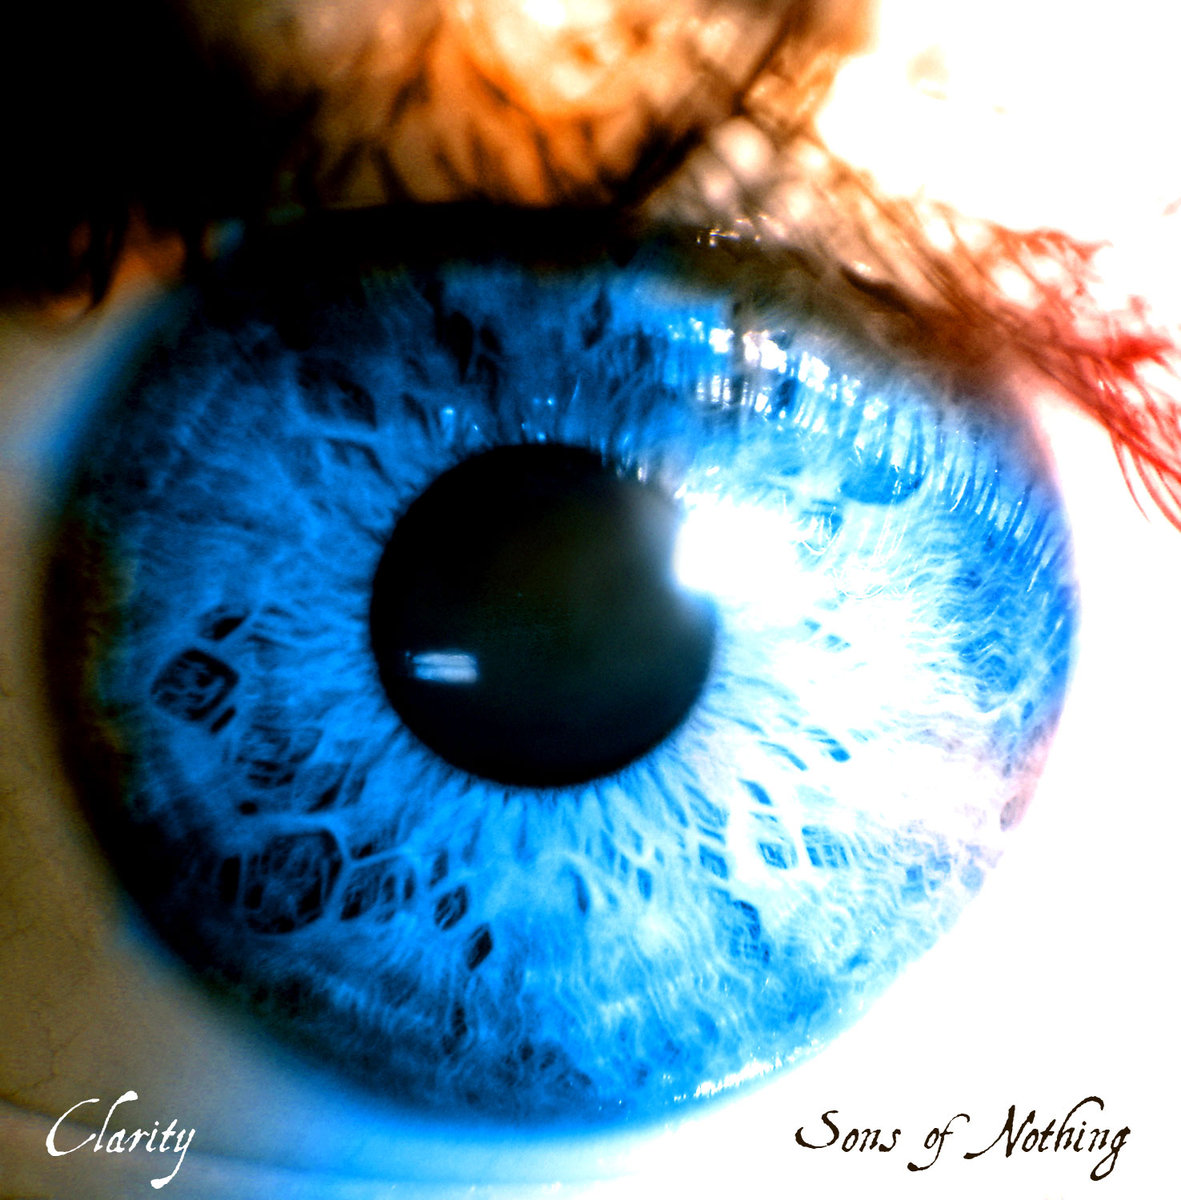 Clarity Cover Art